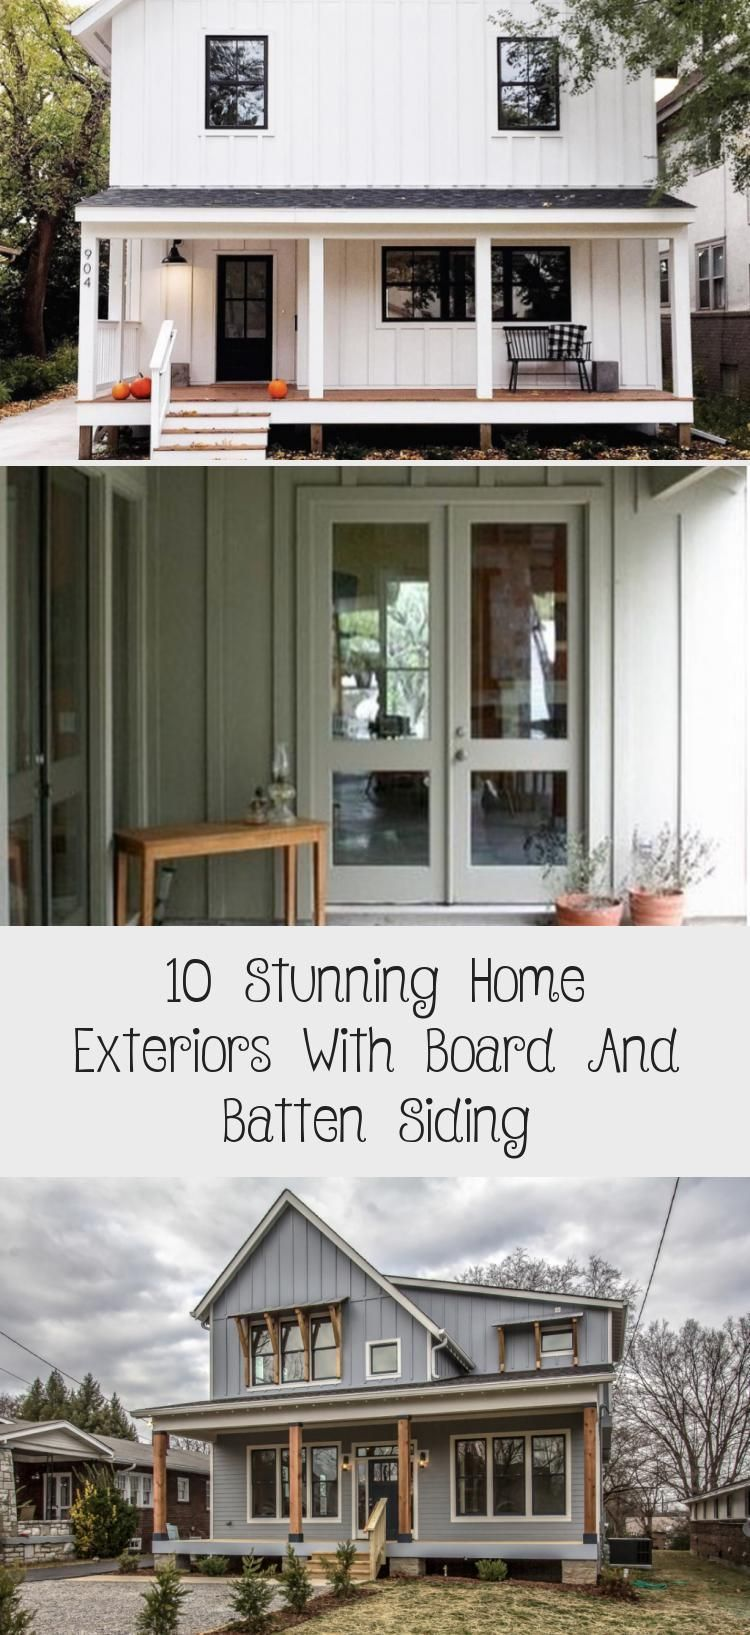 10 Stunning Home Exteriors With Board And Batten Siding Boardandbattensiding 10 Stunning Home Exteriors With Board And Batten Siding Craftivity Desig Germanen